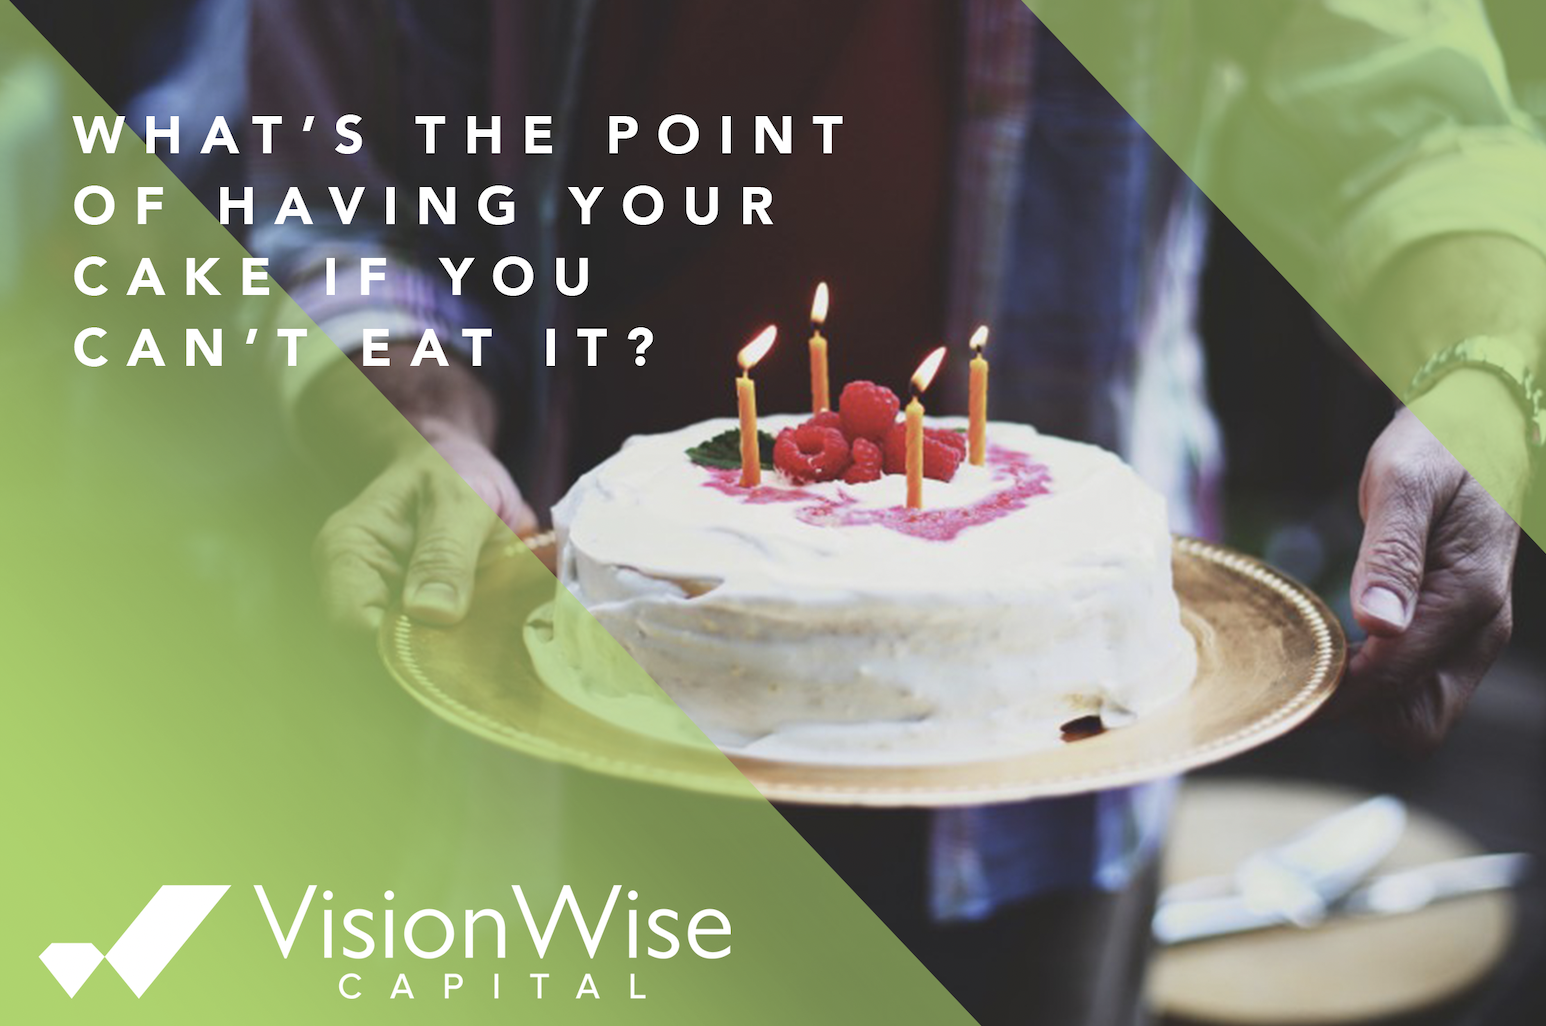 What's The Point of Having Your Cake If You Can't Eat It?